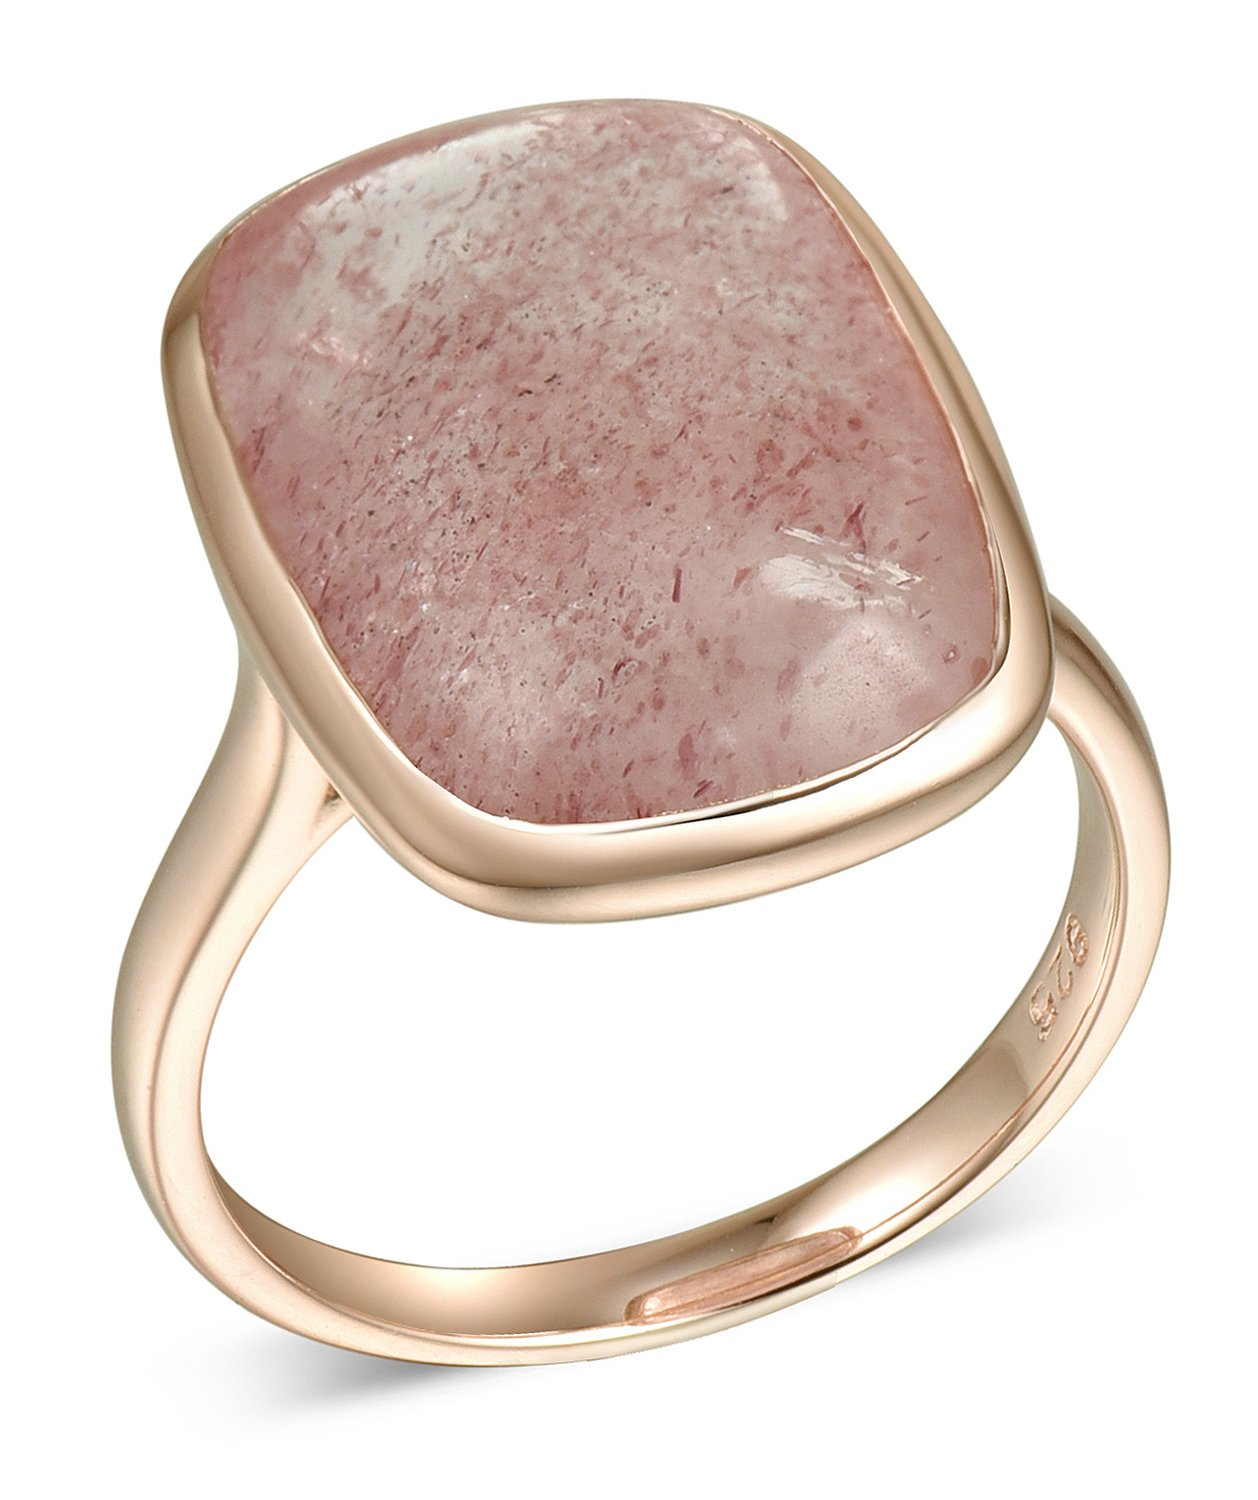 Lanfeny Rose Golden 925 Sterling Silver Ring with Natural Squared Strawberry Quartz, Size 9